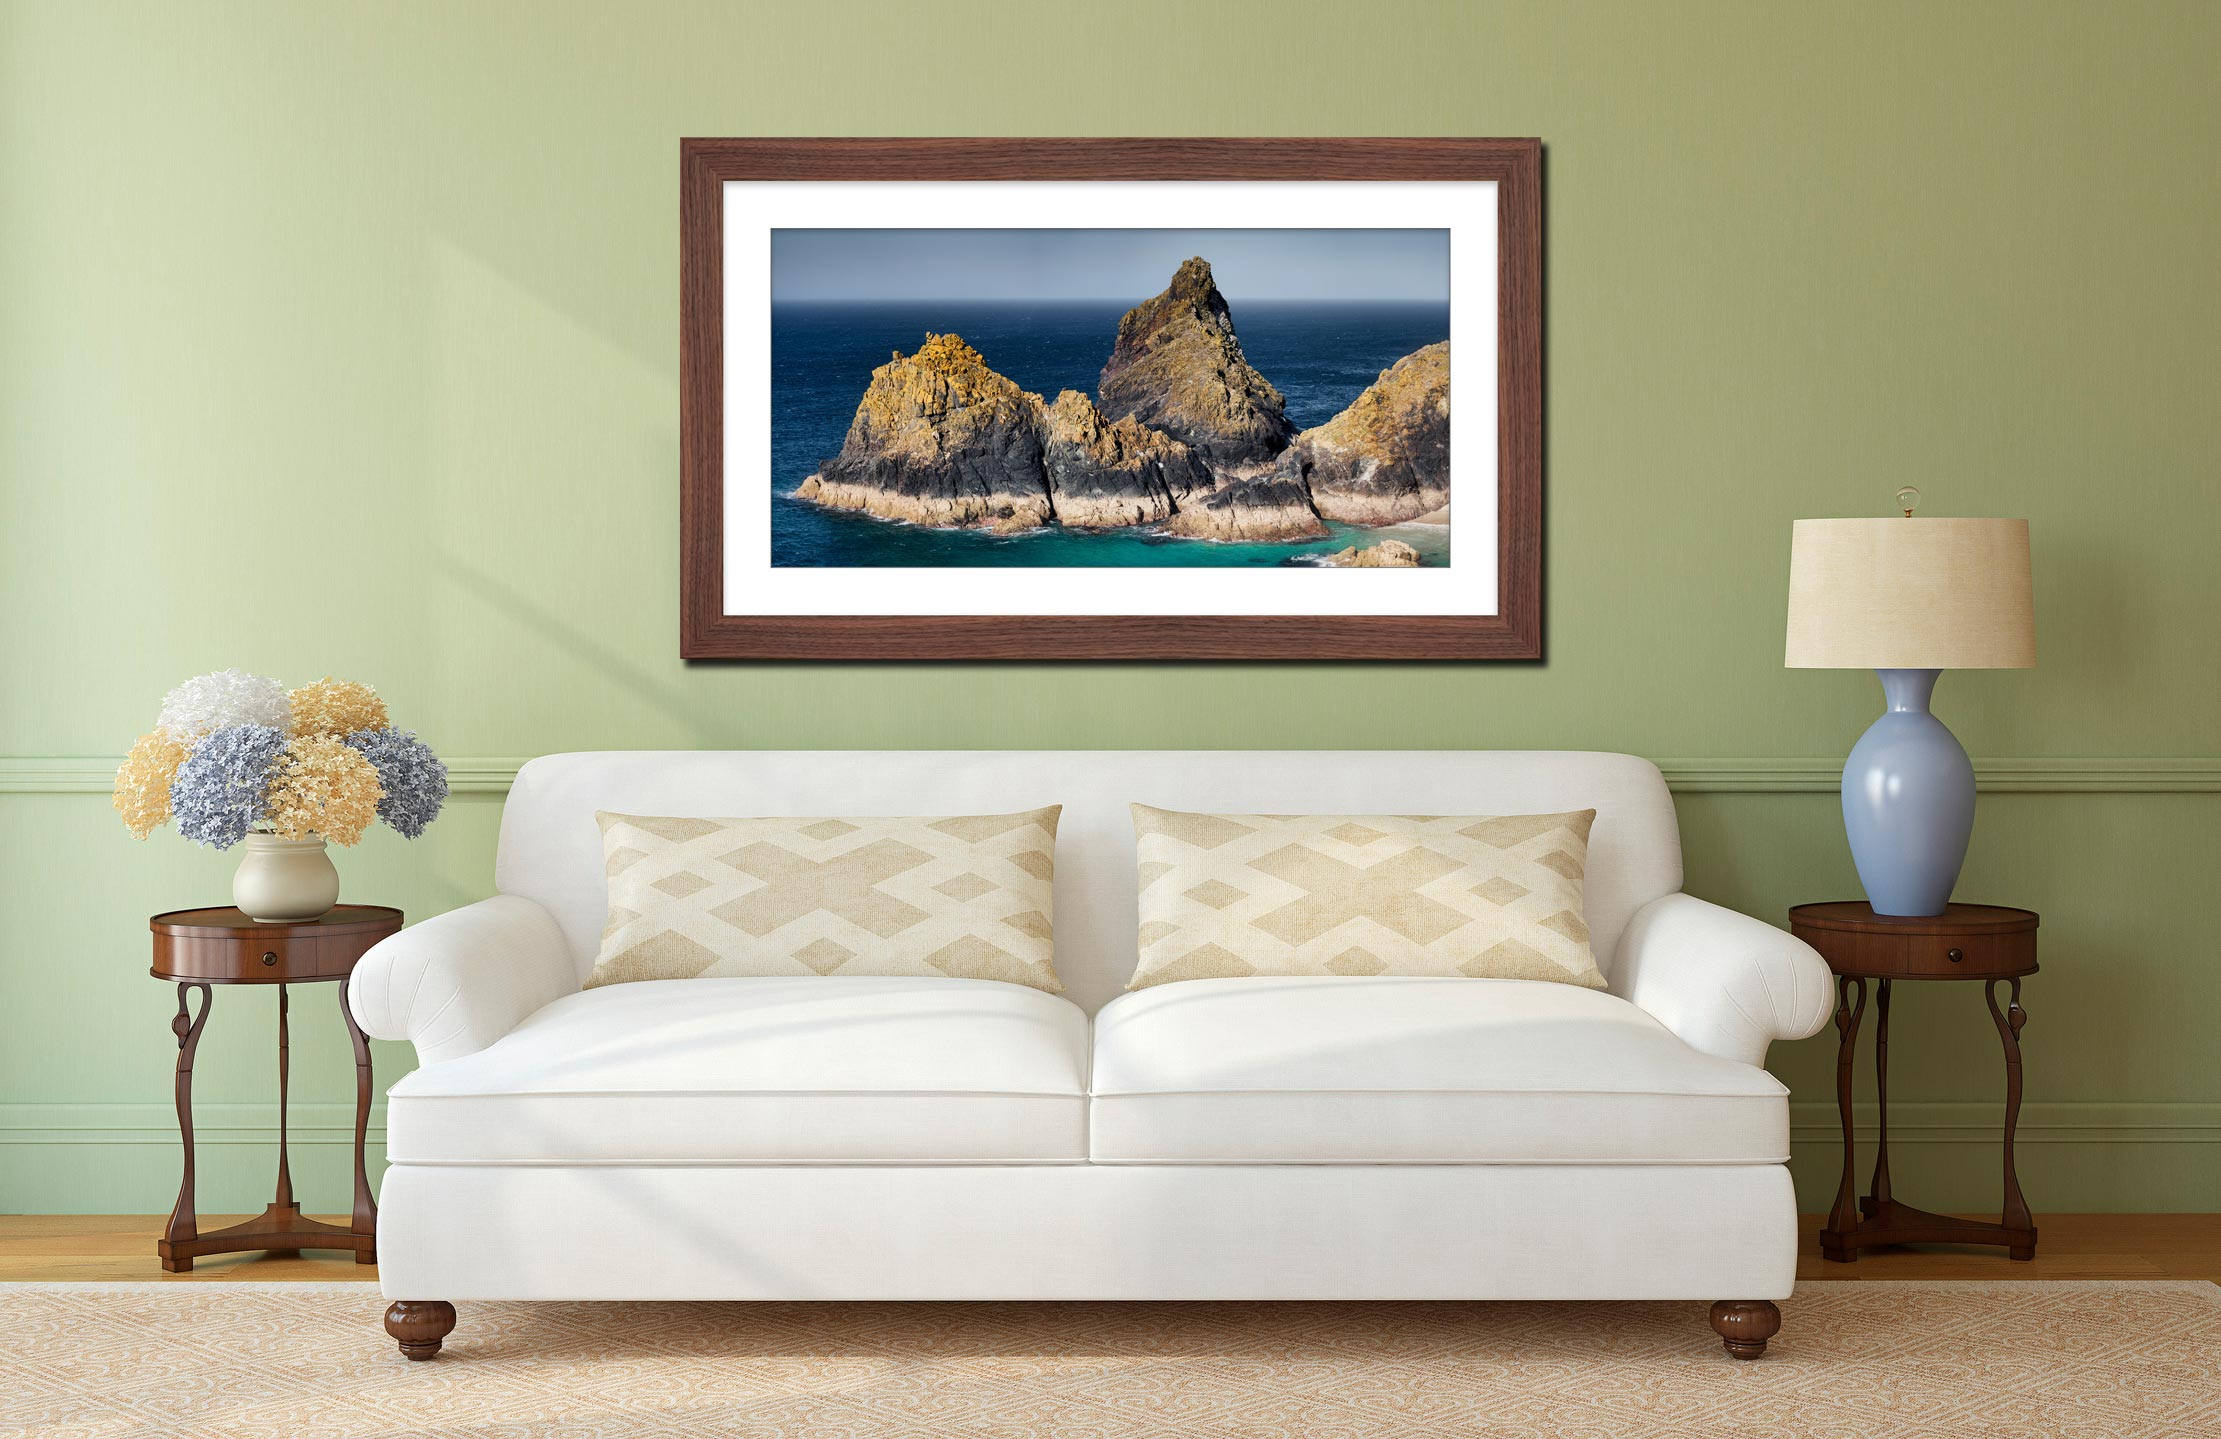 The Bishop Rock at Kynance - Framed Print with Mount on Wall